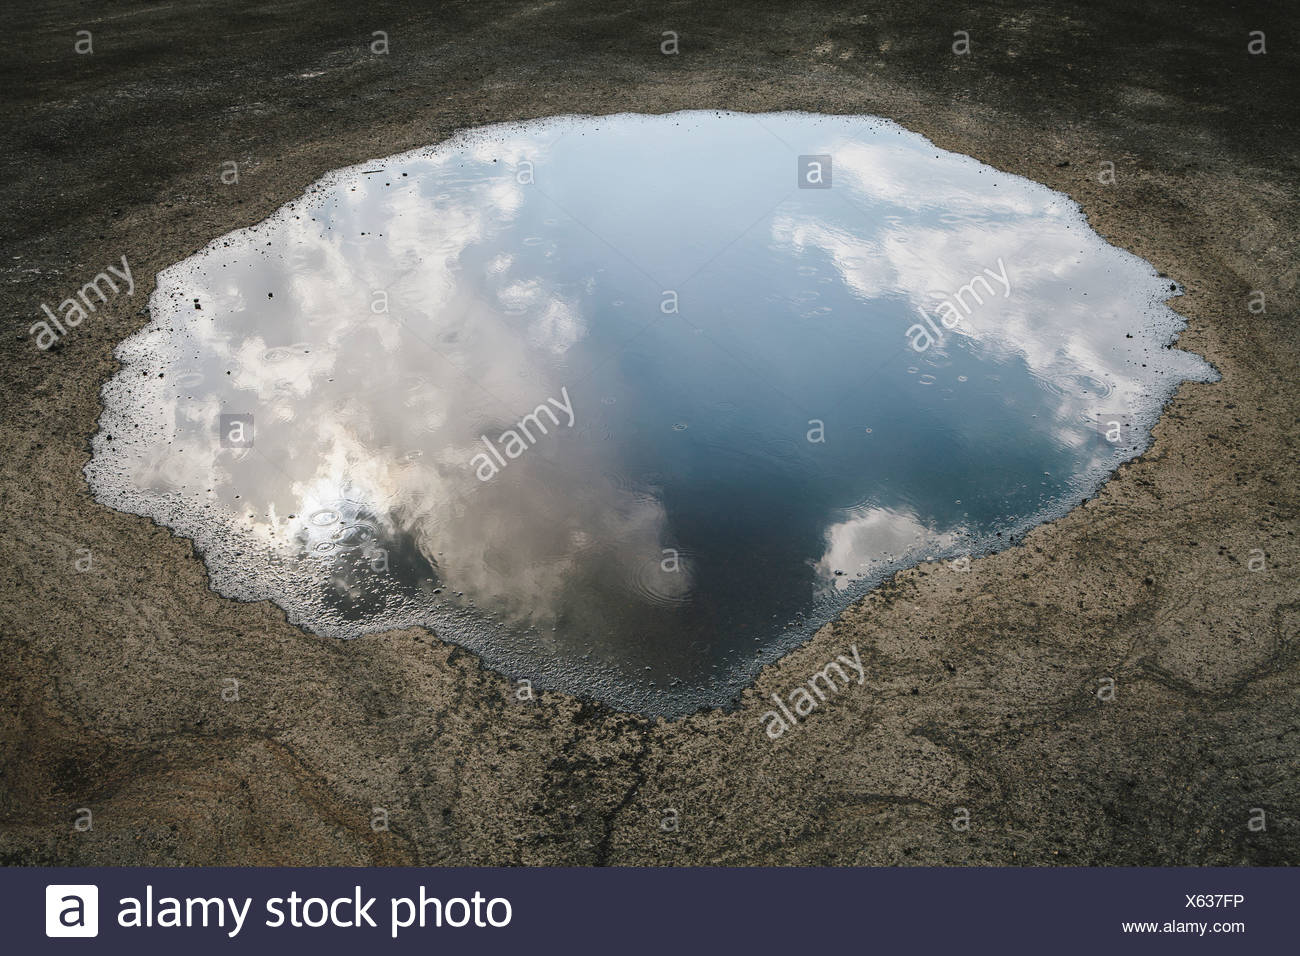 Rain drops falling onto a large puddle A reflection of sky and clouds Elko County Nevada USA - Stock Image